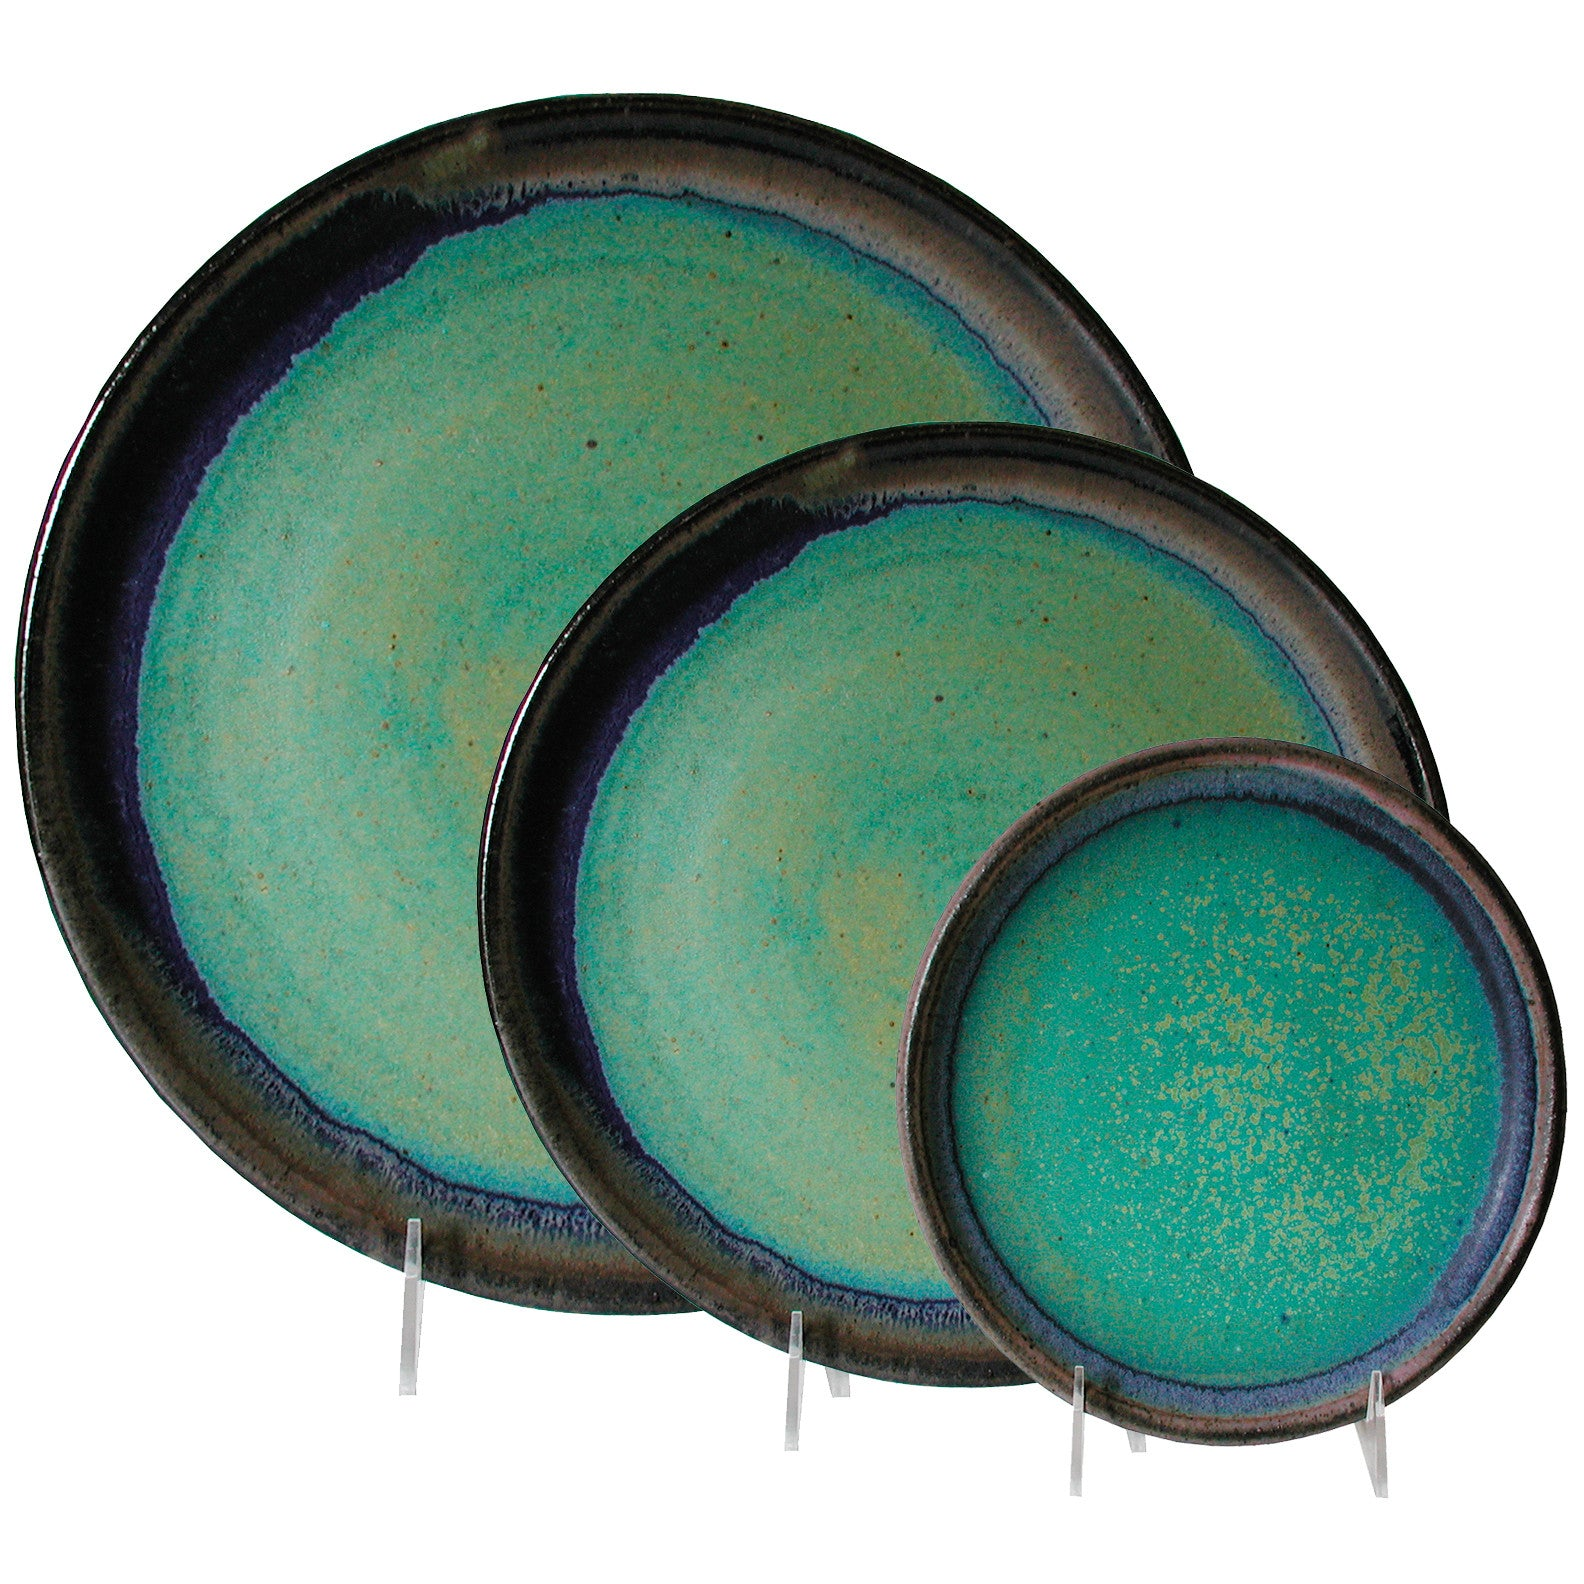 Maishe Dickman Hand Thrown Stoneware Turquoise Plates Dinnerware Place Setting Artistic Artisan Pottery  sc 1 st  Sweetheart Gallery & Maishe Dickman Hand Thrown Stoneware Turquoise Plates Dinnerware ...